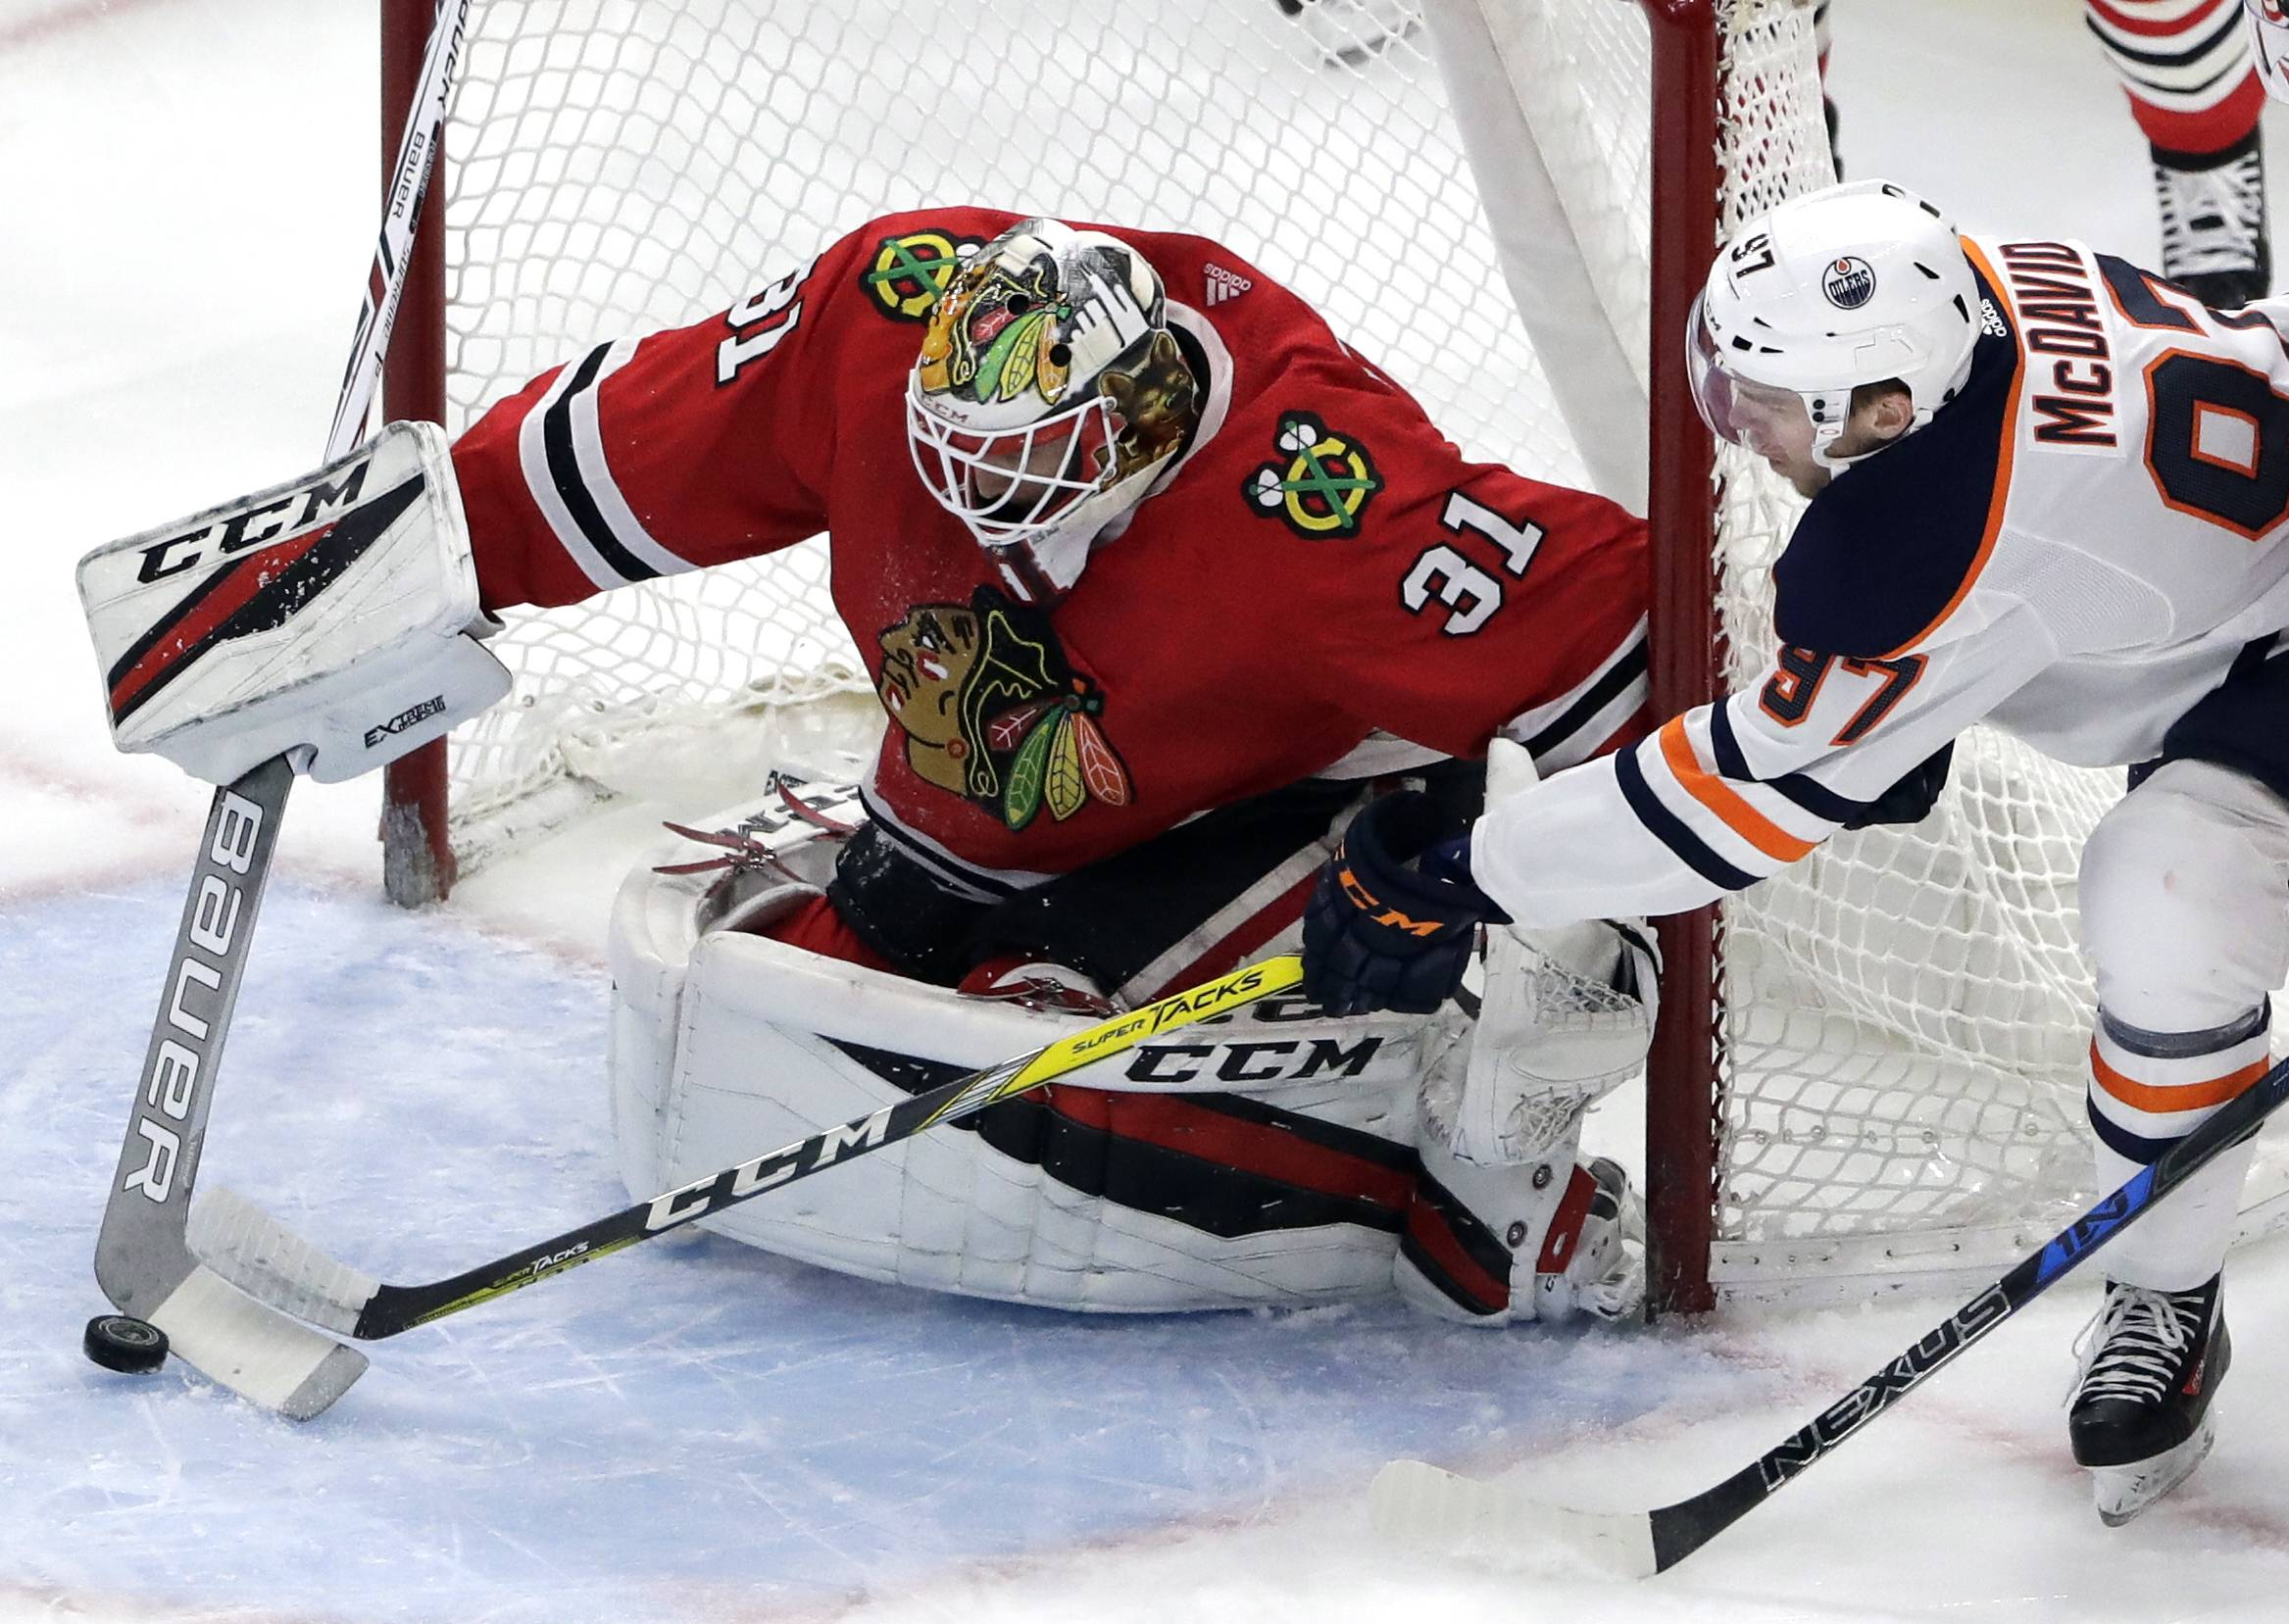 Chicago Blackhawks goalie Anton Forsberg, left, blocks a shot by Edmonton Oilers center Connor McDavid during the first period of an NHL hockey game Sunday, Jan. 7, 2018, in Chicago.